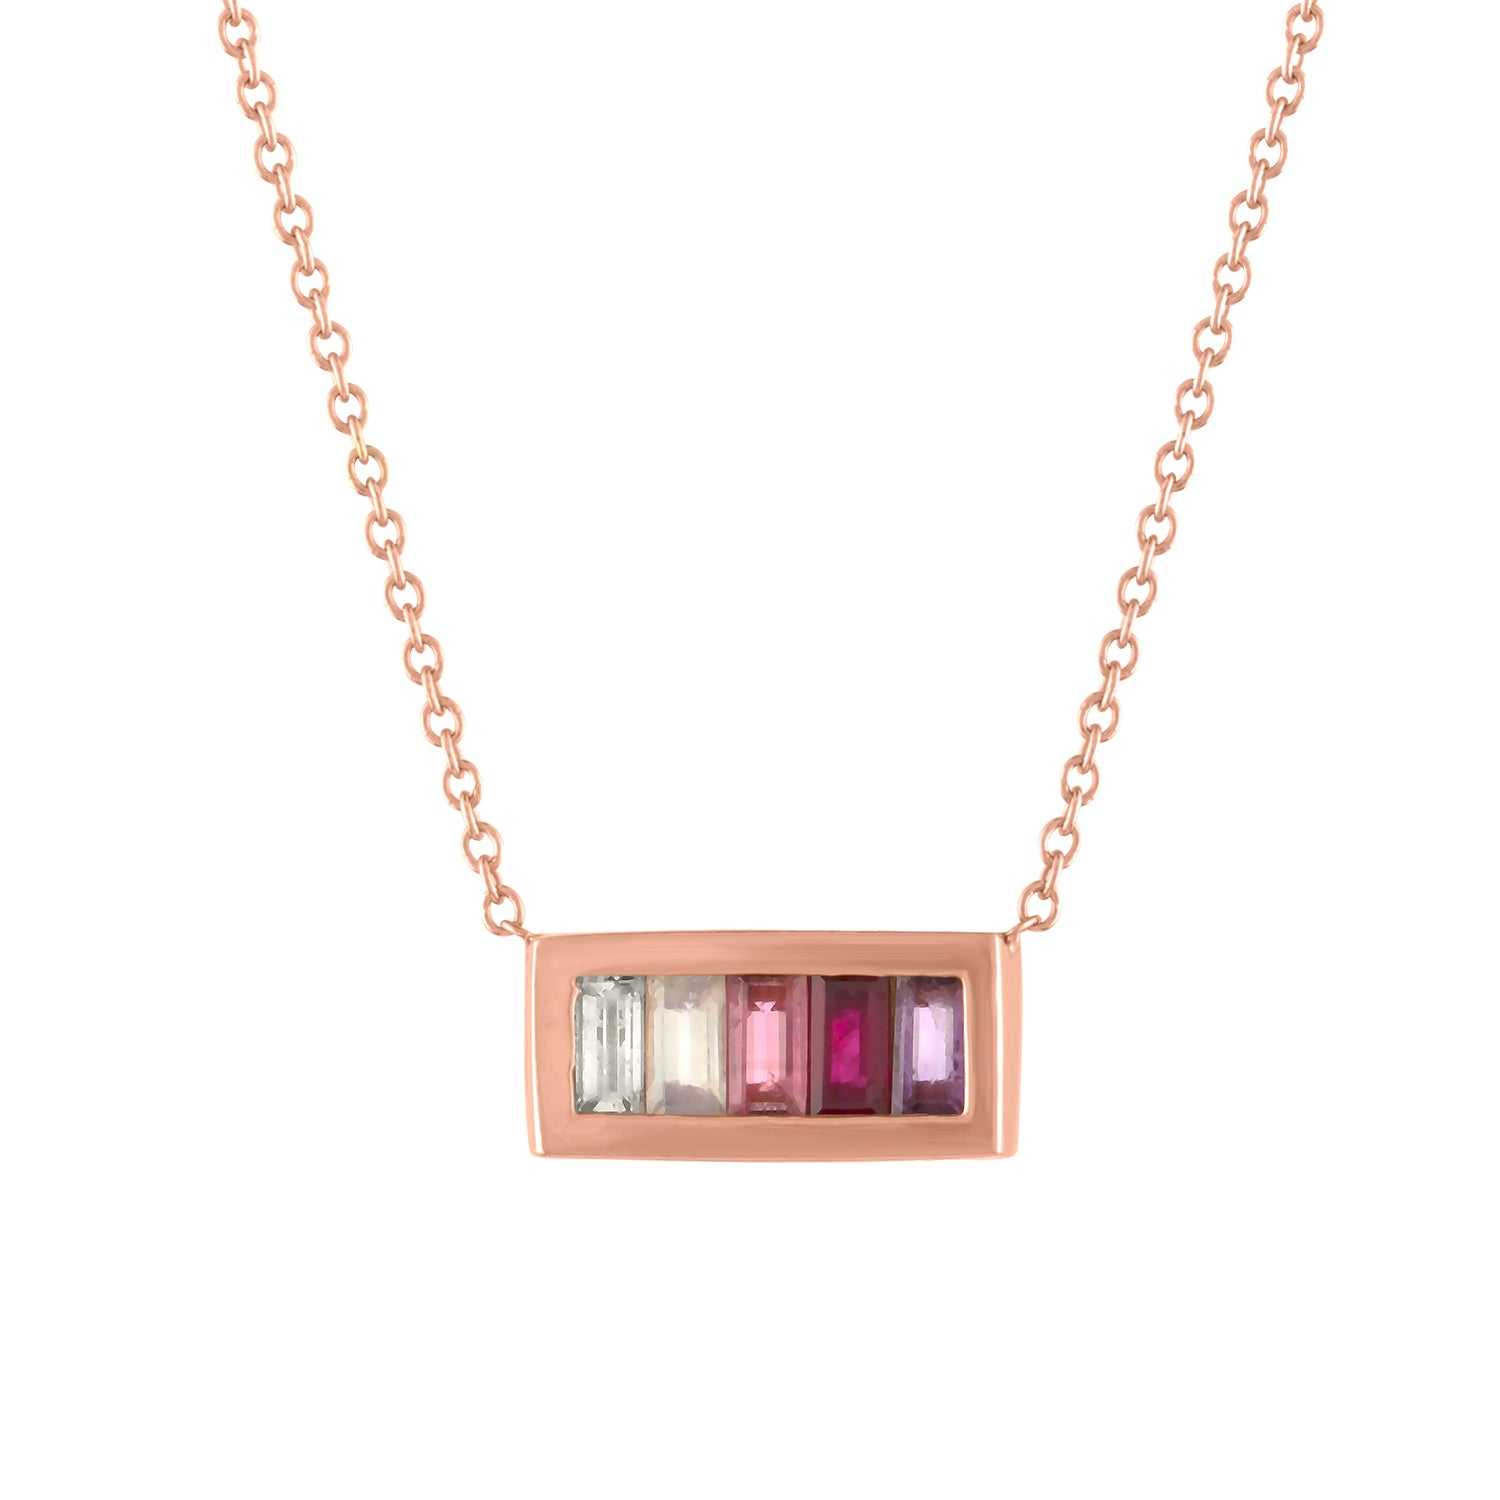 Rectangular pendant with 5 pink ombre baguettes